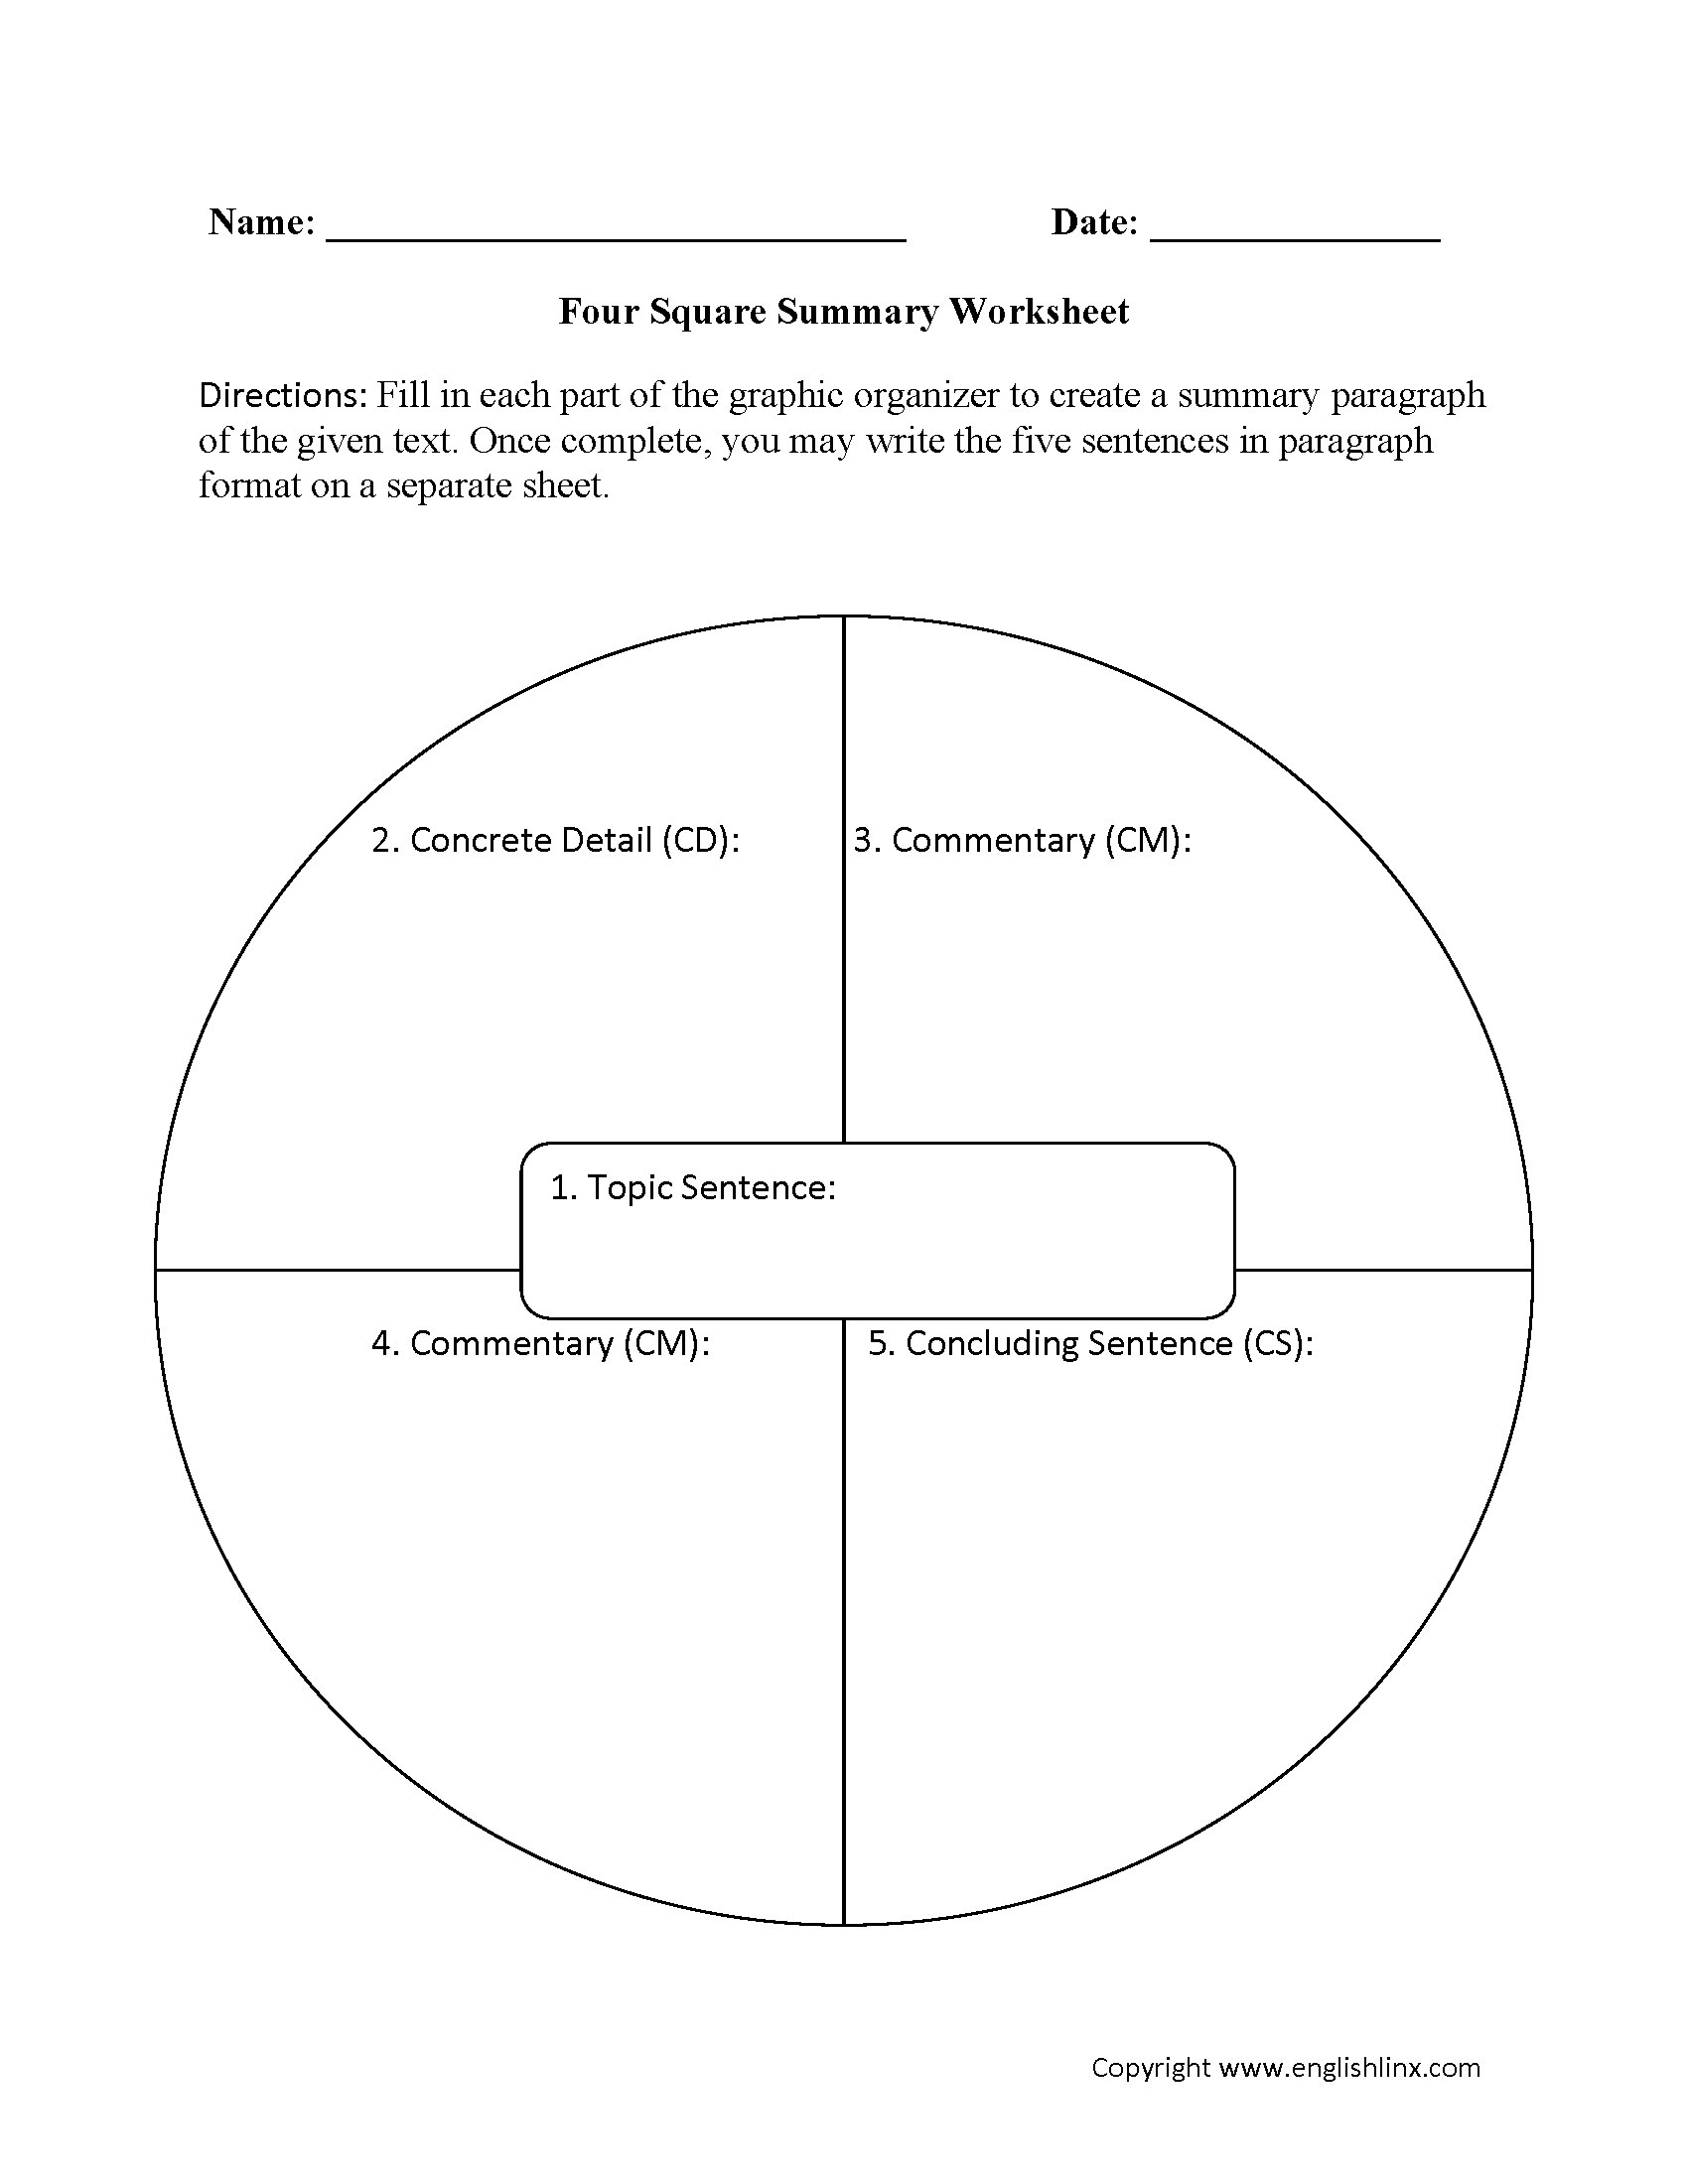 Worksheets Summarizing Worksheets For 4th Grade englishlinx com summary worksheets worksheets